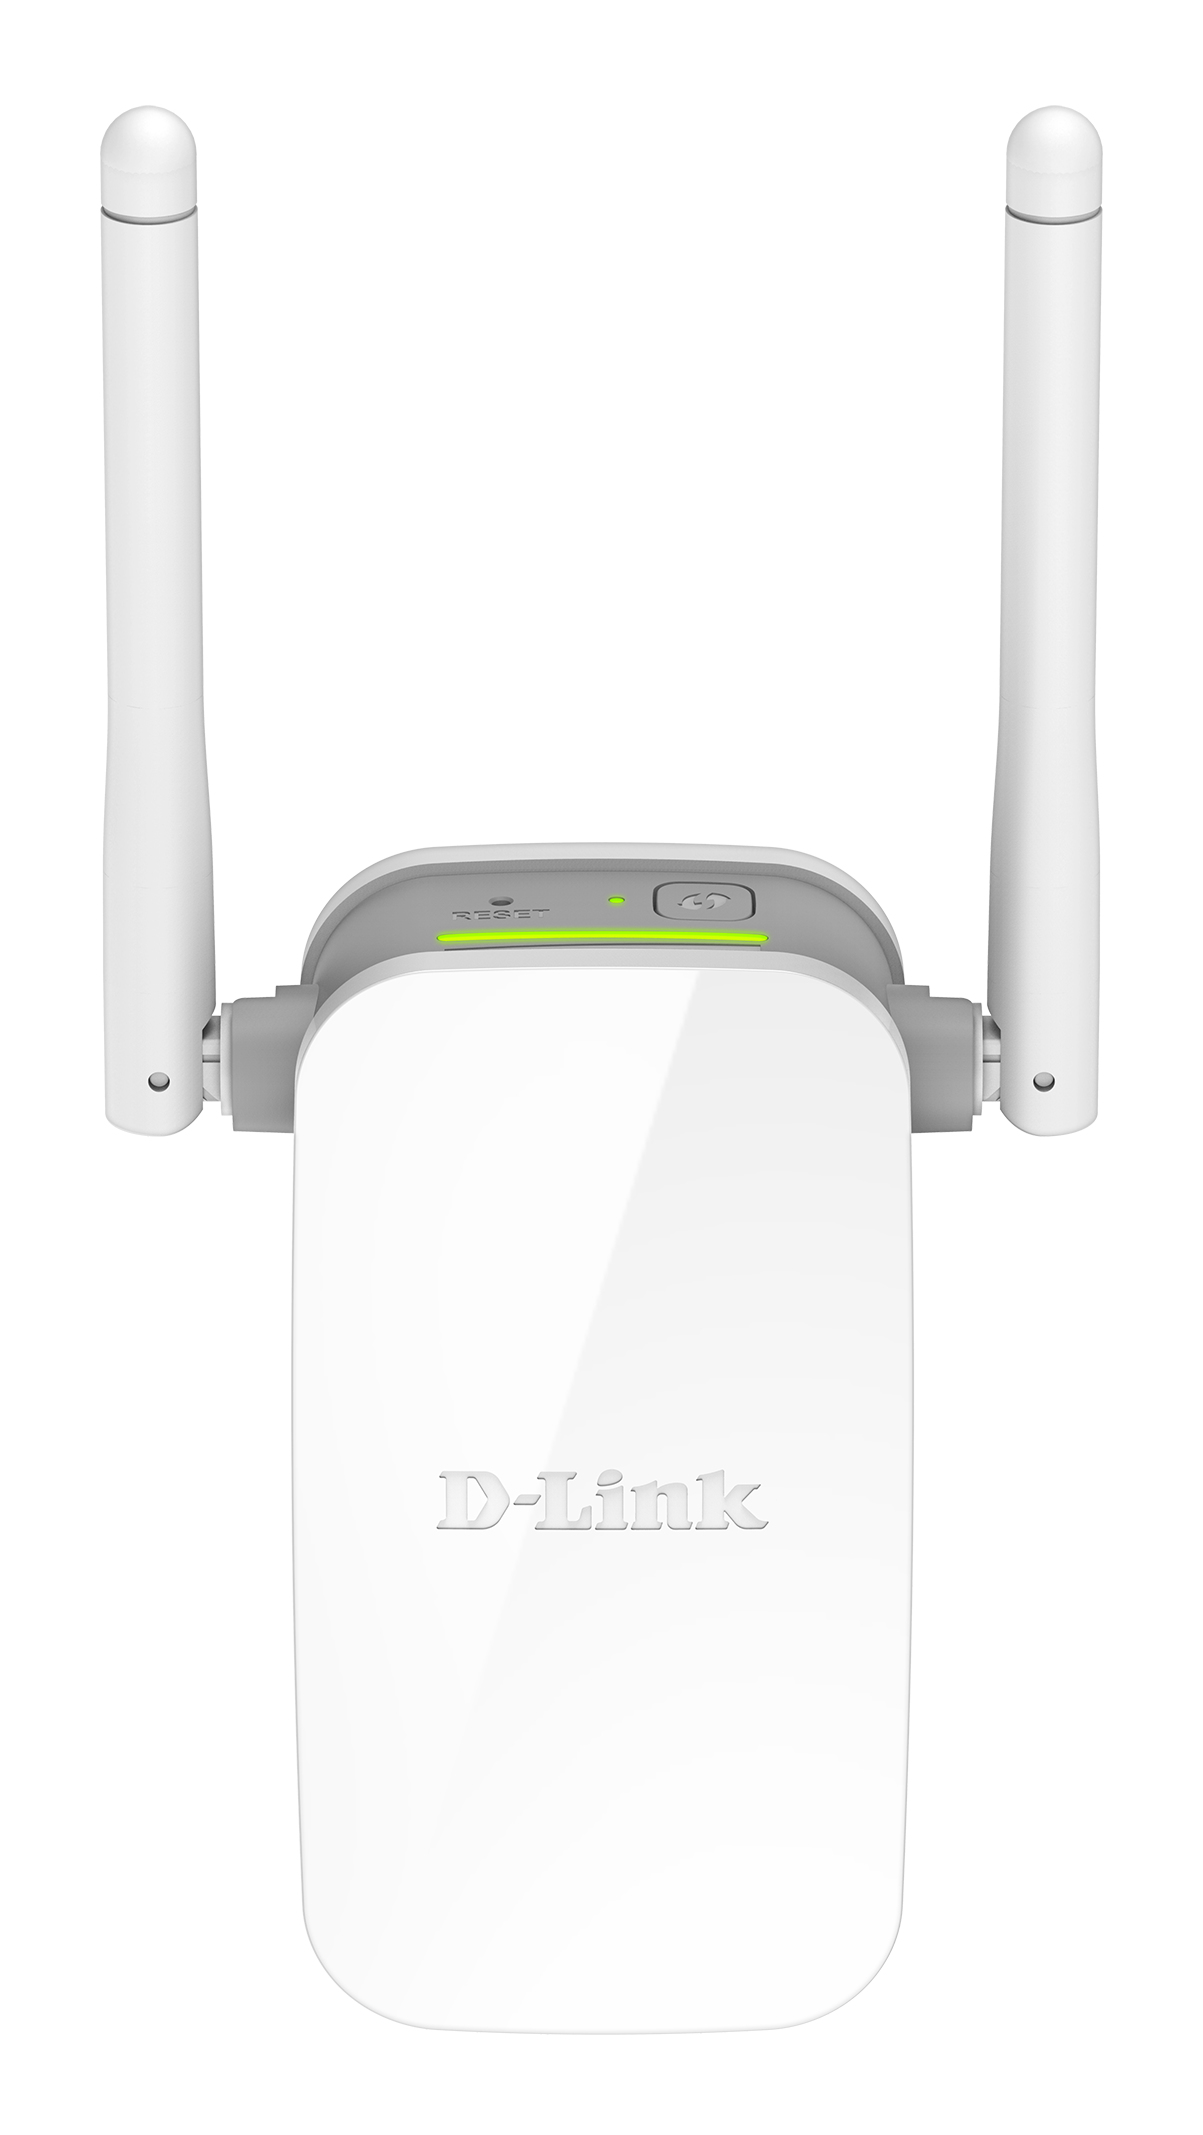 D-Link Wireless Range Extender N300, 11/54/300M